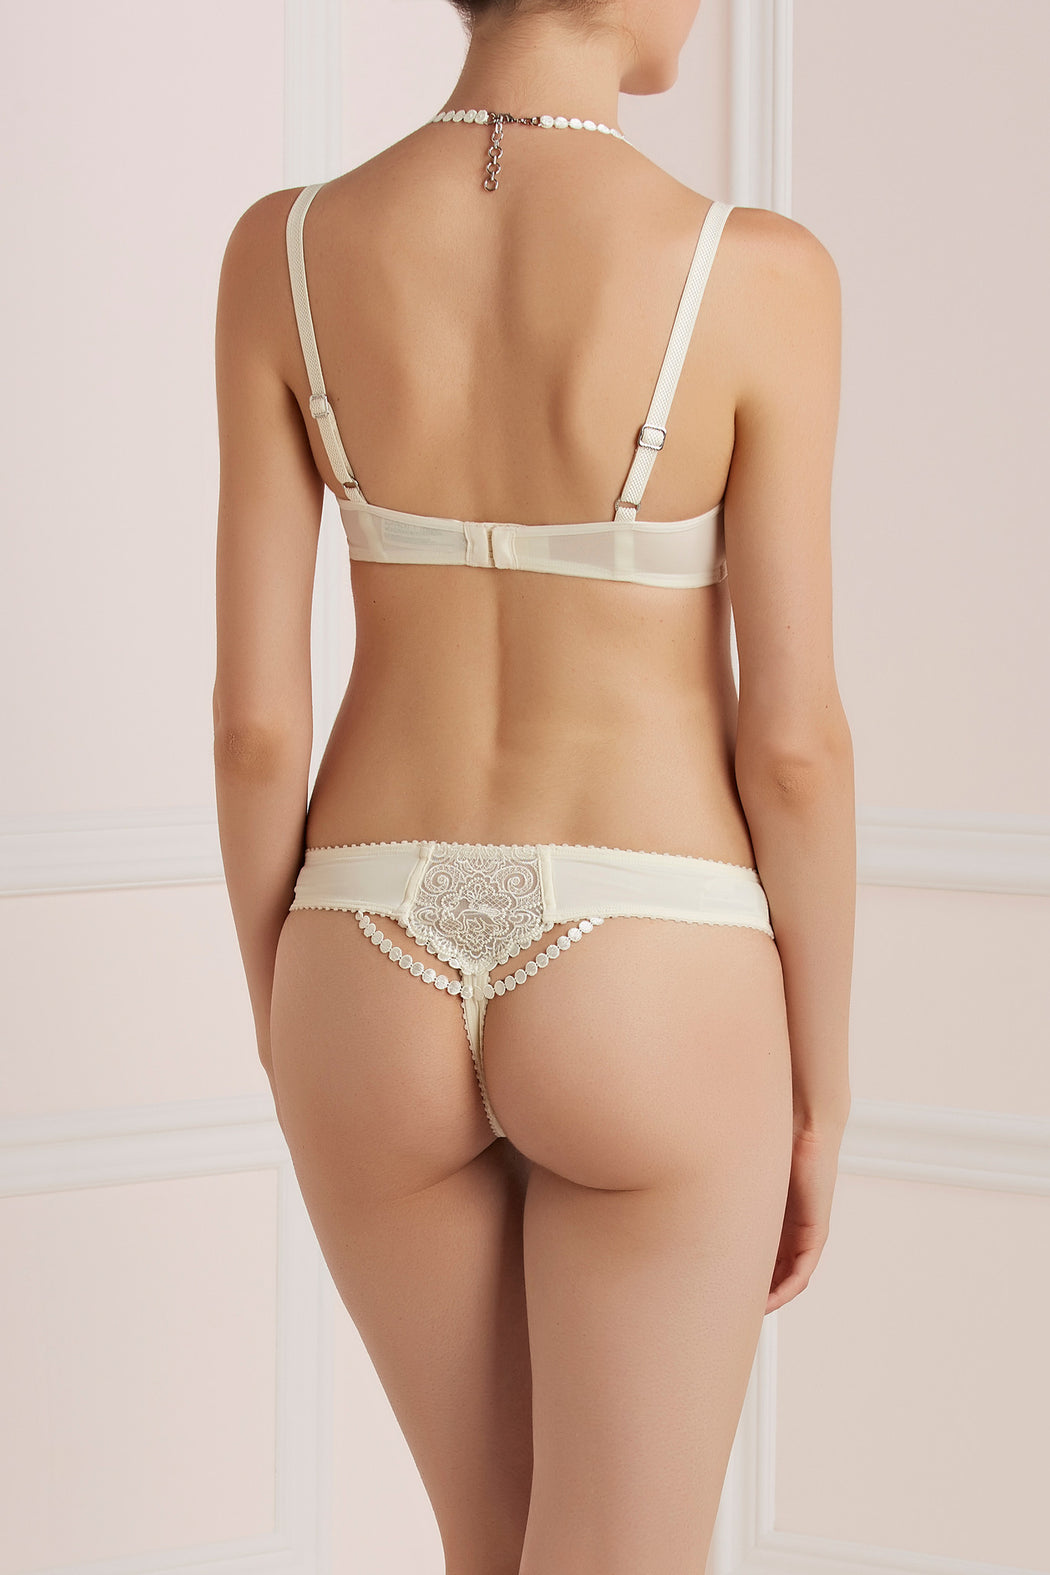 Mauritshuis white marble thong by Marlies Dekkers workingirls lingerie